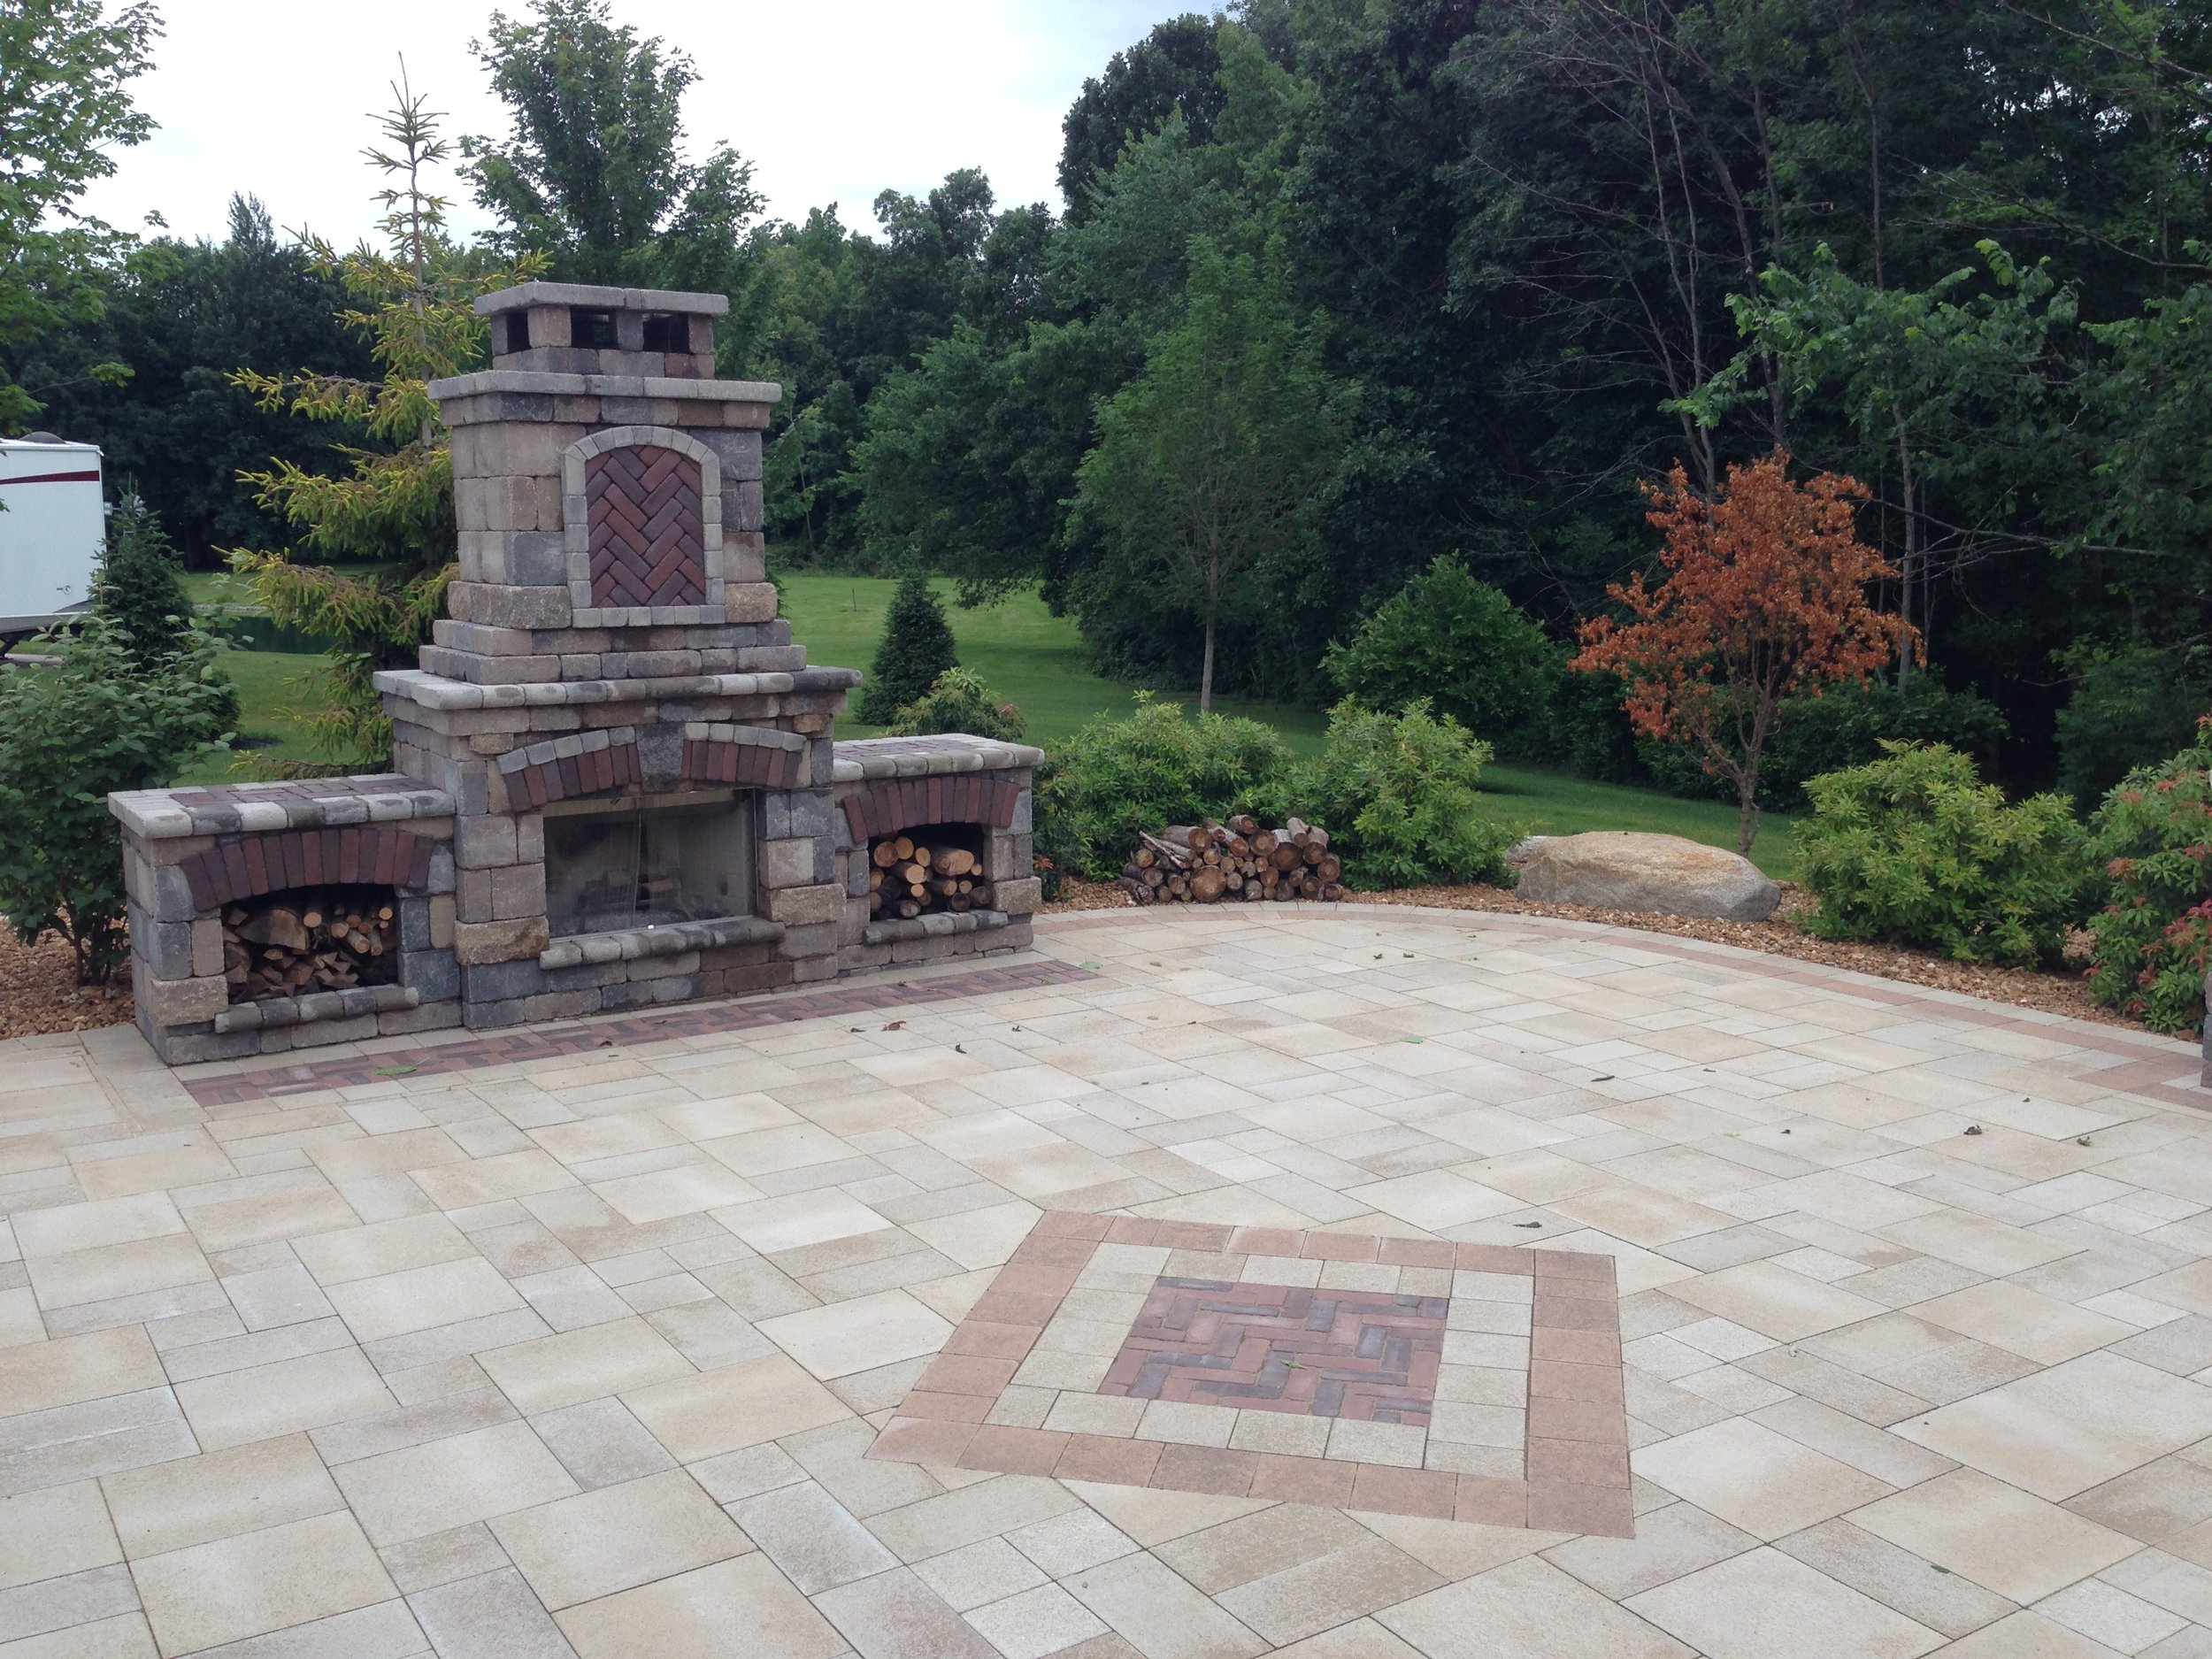 Hardscape - Unilock paver patios, natural stone, walkways, steps, fire pits, boulder walls, landscape stone, edging, and much more.